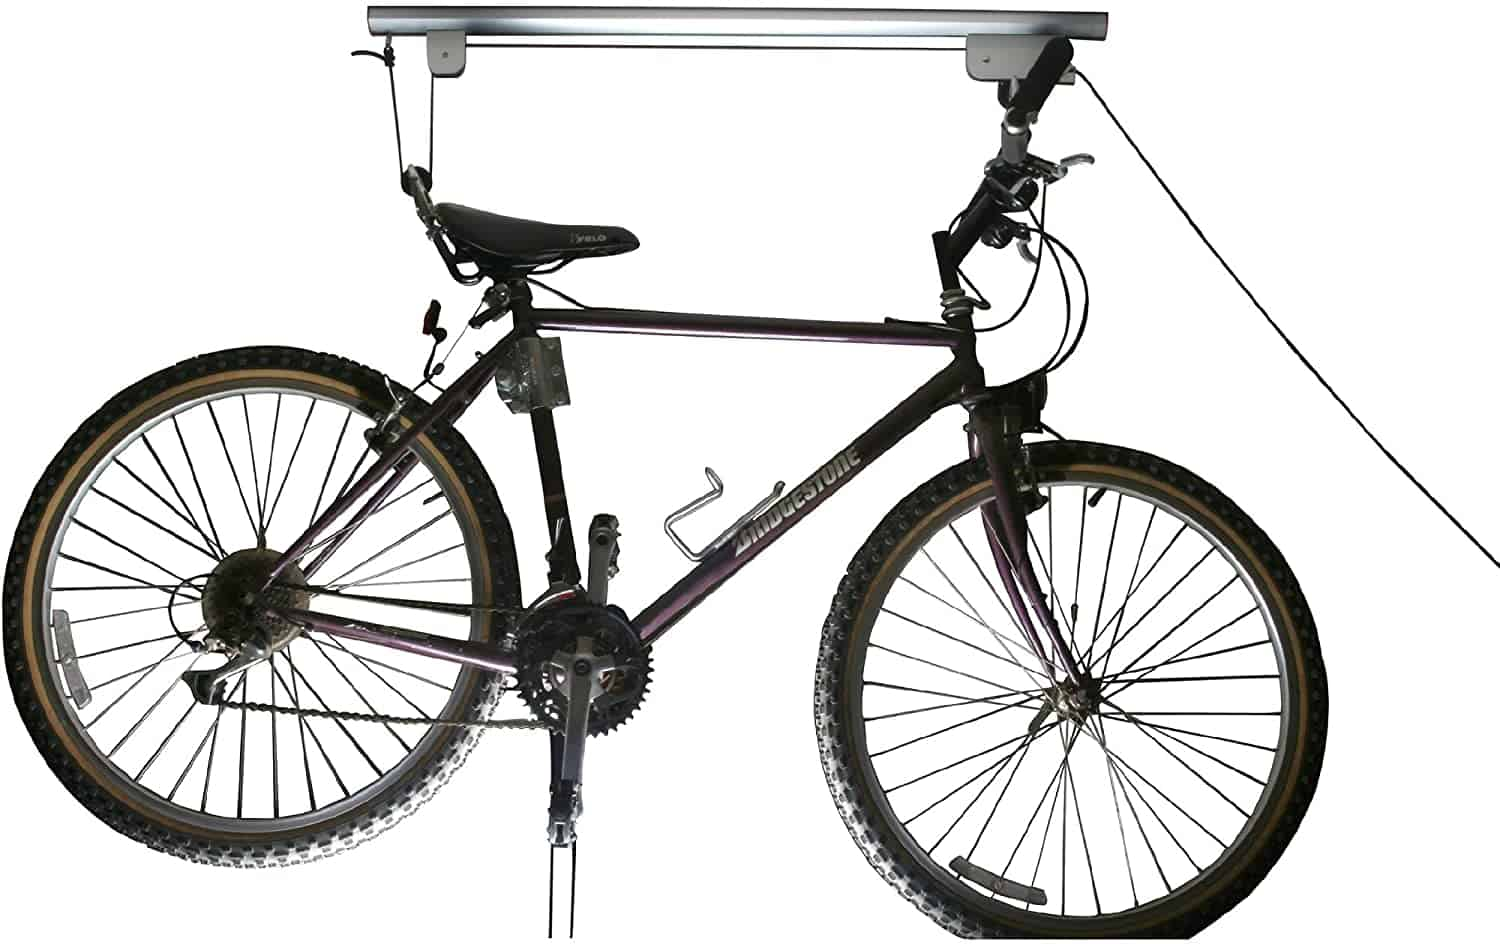 Best Bike Ceiling Mount: RAD Cycle Products Rail Mount Bike and Ladder Lift